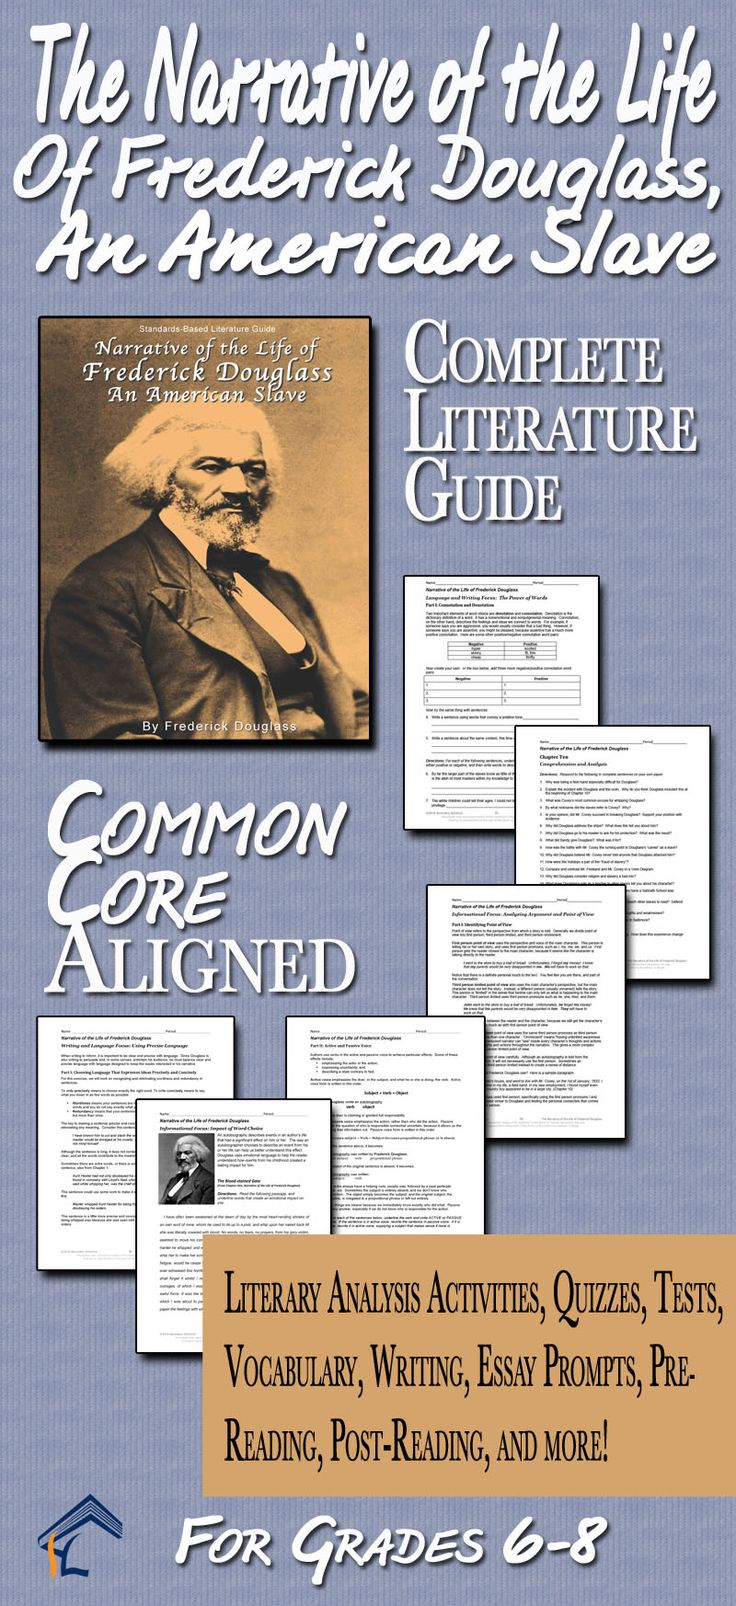 an analysis of the narrative of frederick douglass show Narrative of the life of frederick douglass  biggest and narrative of frederick douglass analysis of the  ask lots of frederick douglass he shows many.